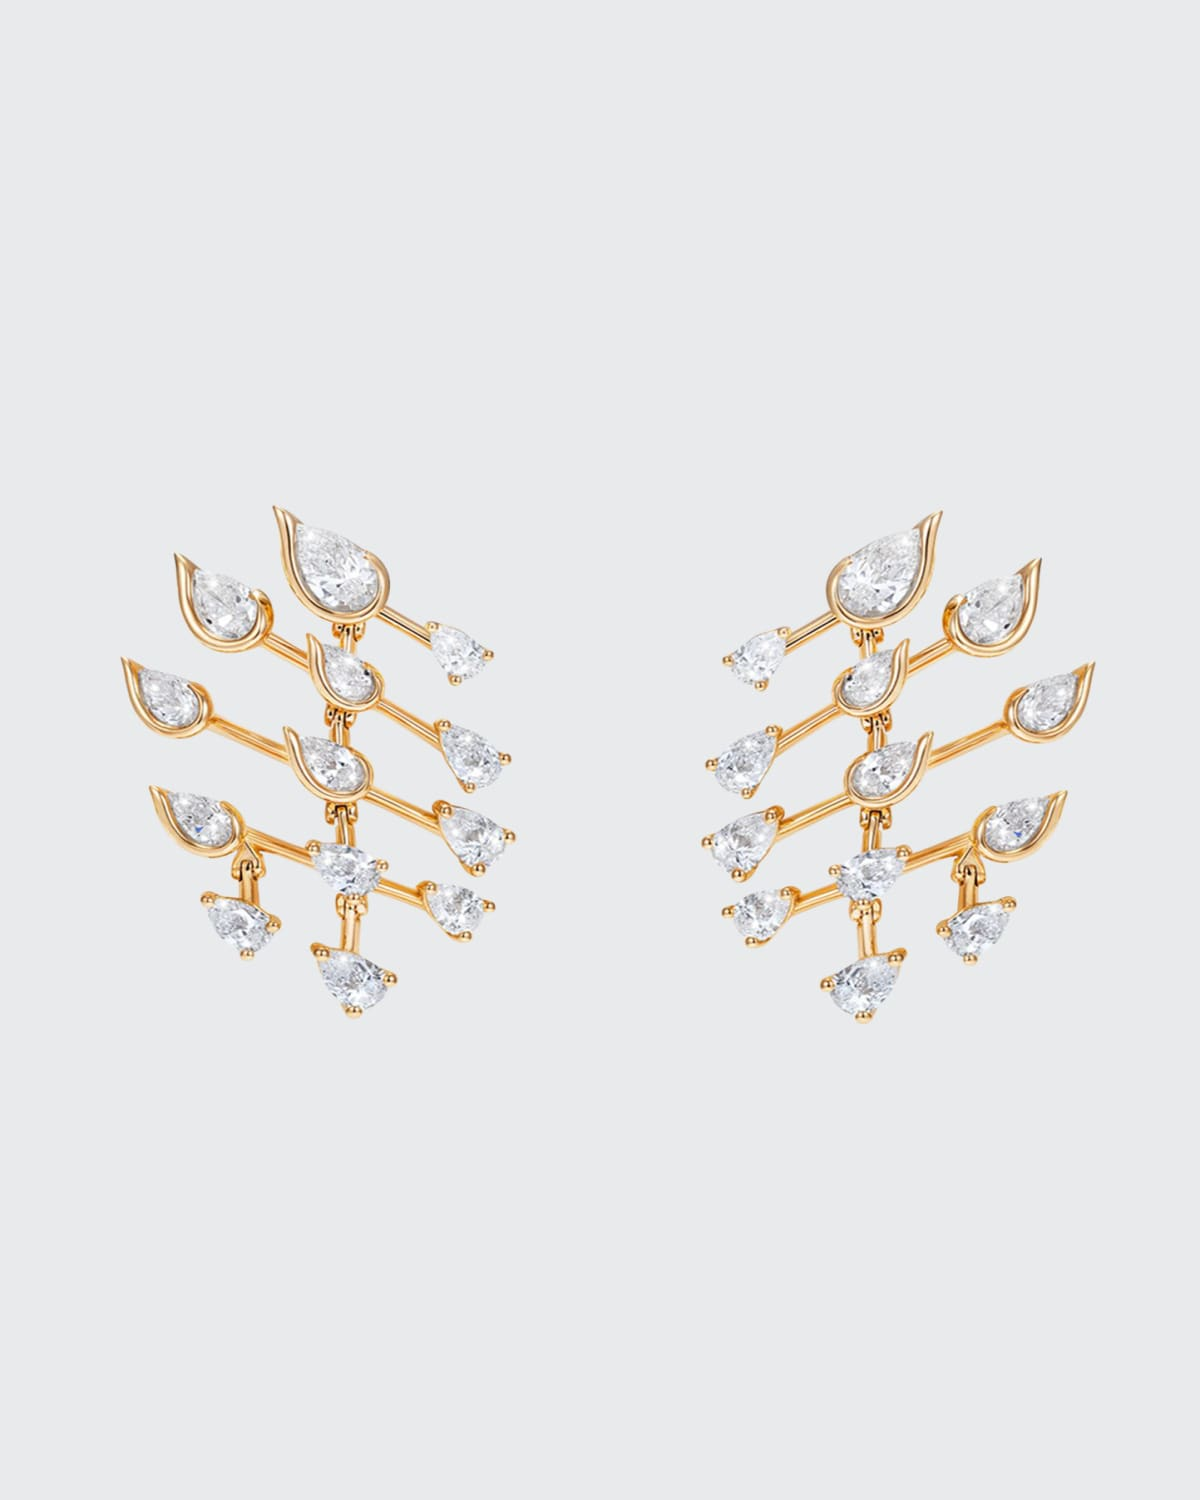 Flare Small Earrings in 18K Yellow Gold and Diamonds